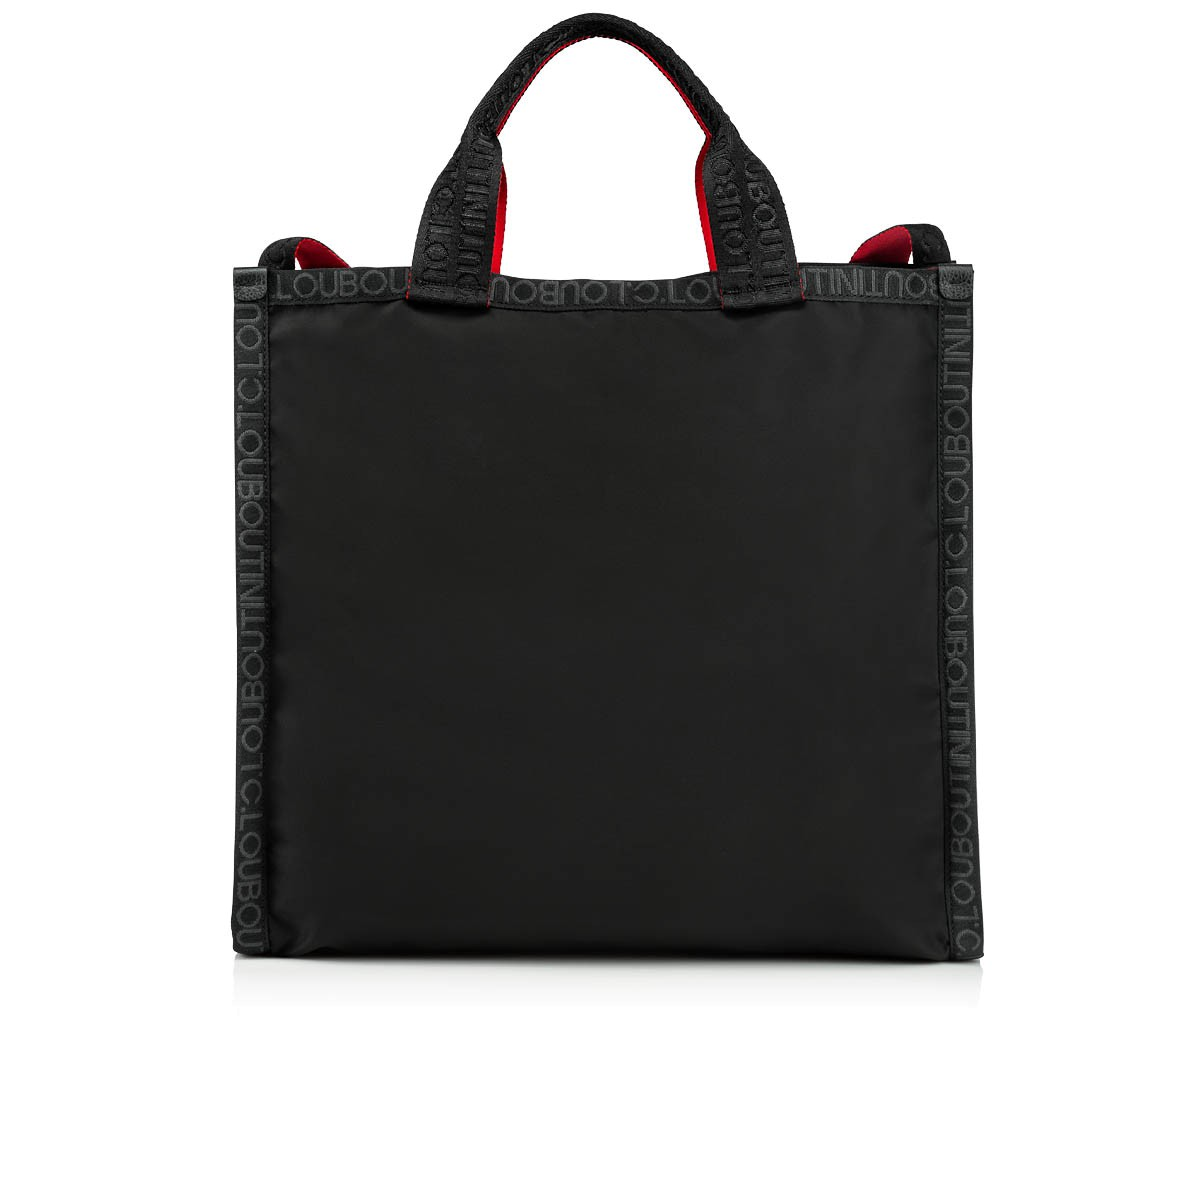 Men Bag - Loubiclic - Christian Louboutin